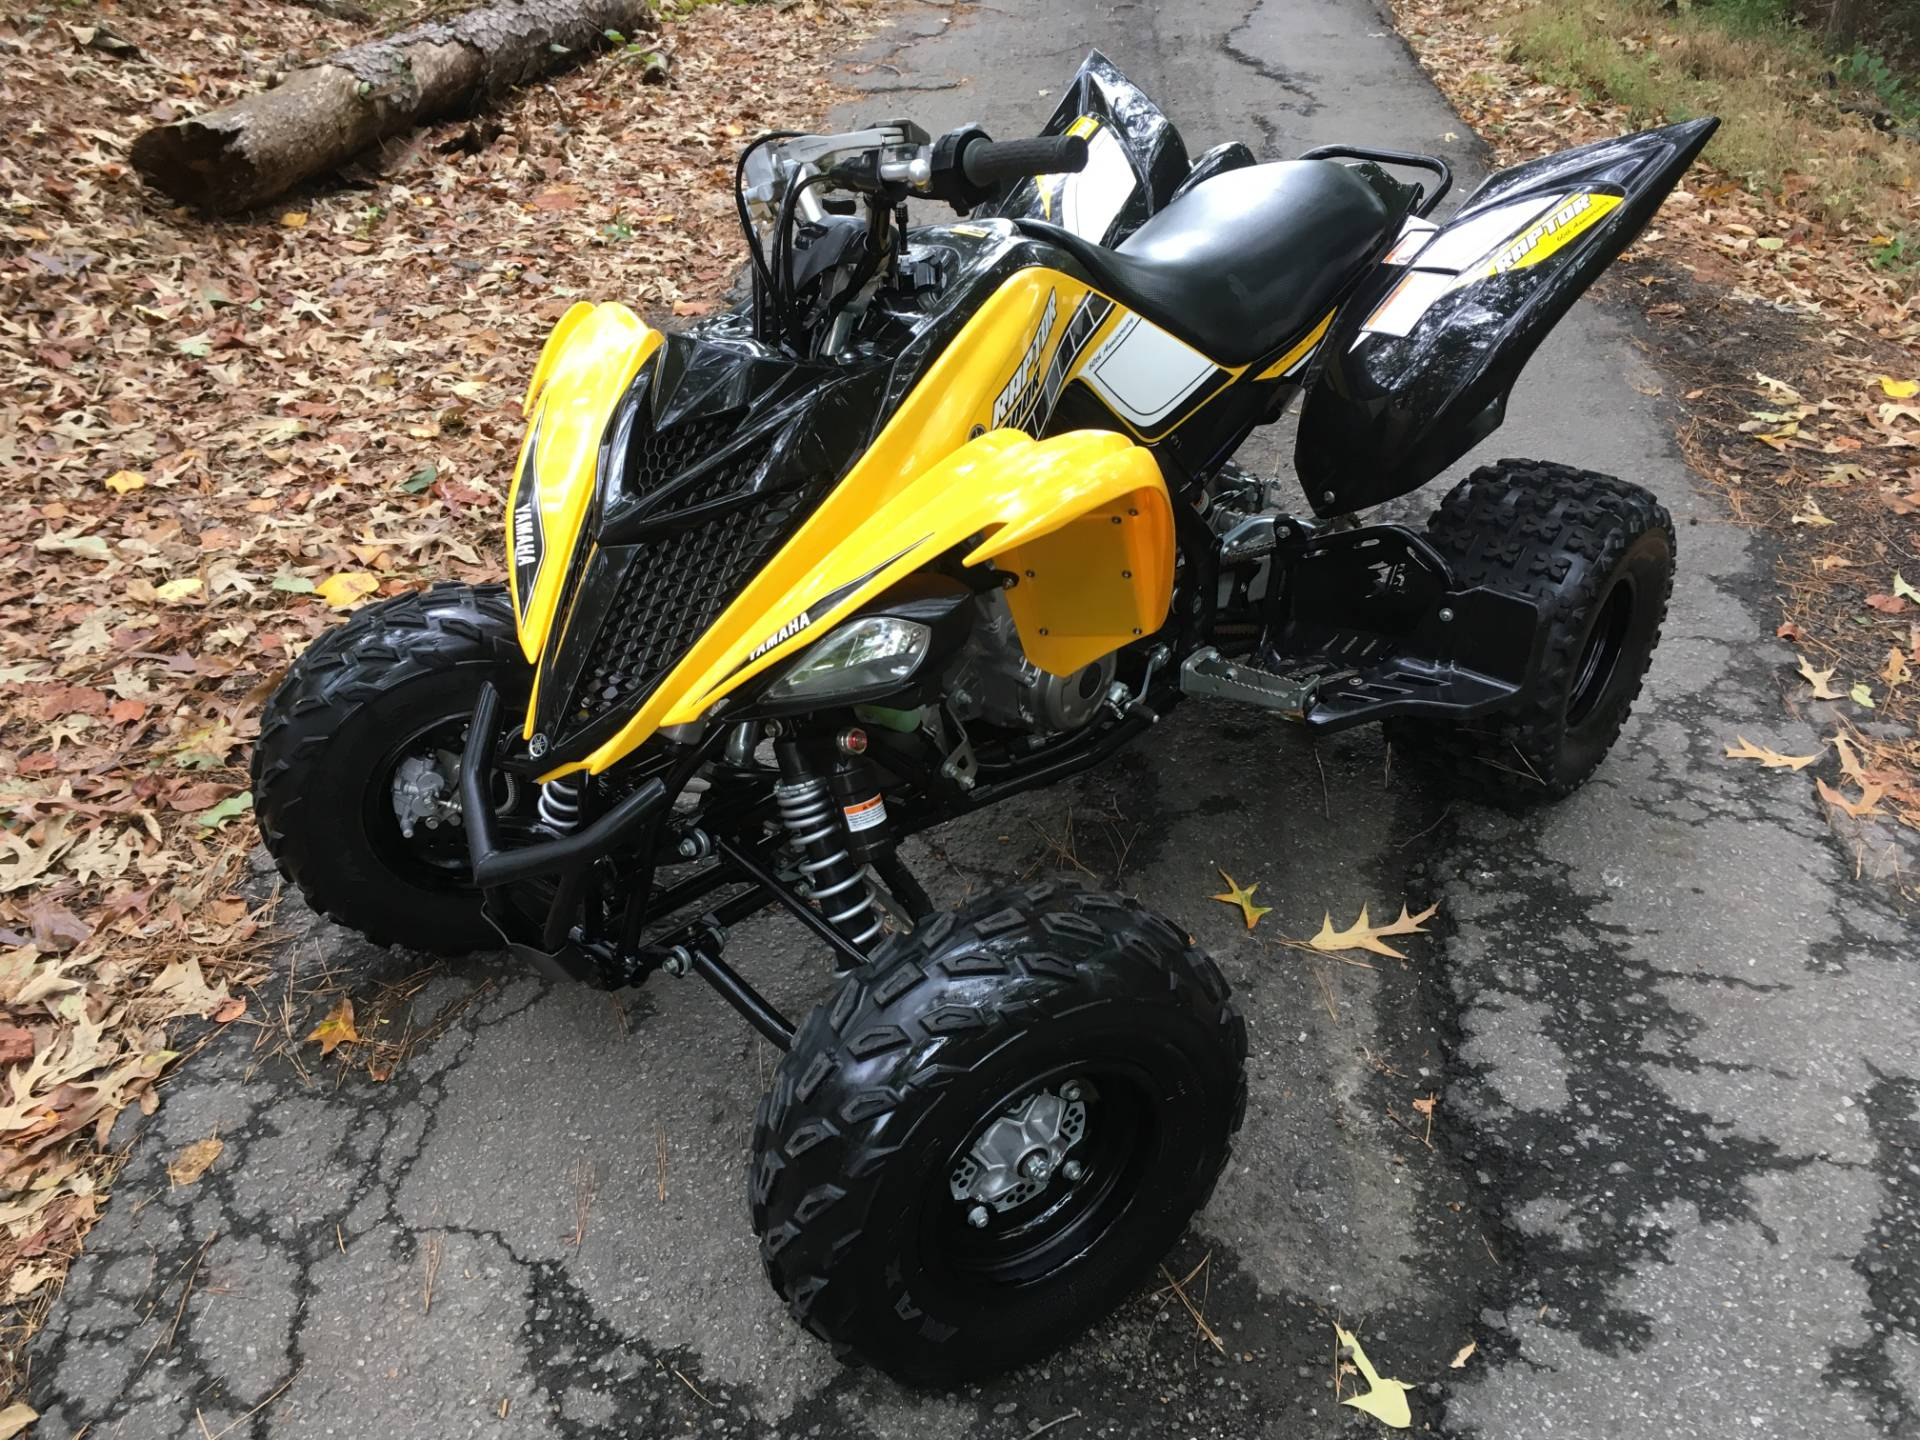 2016 Yamaha RAPTOR 700R SPECIAL EDITION for sale 214744